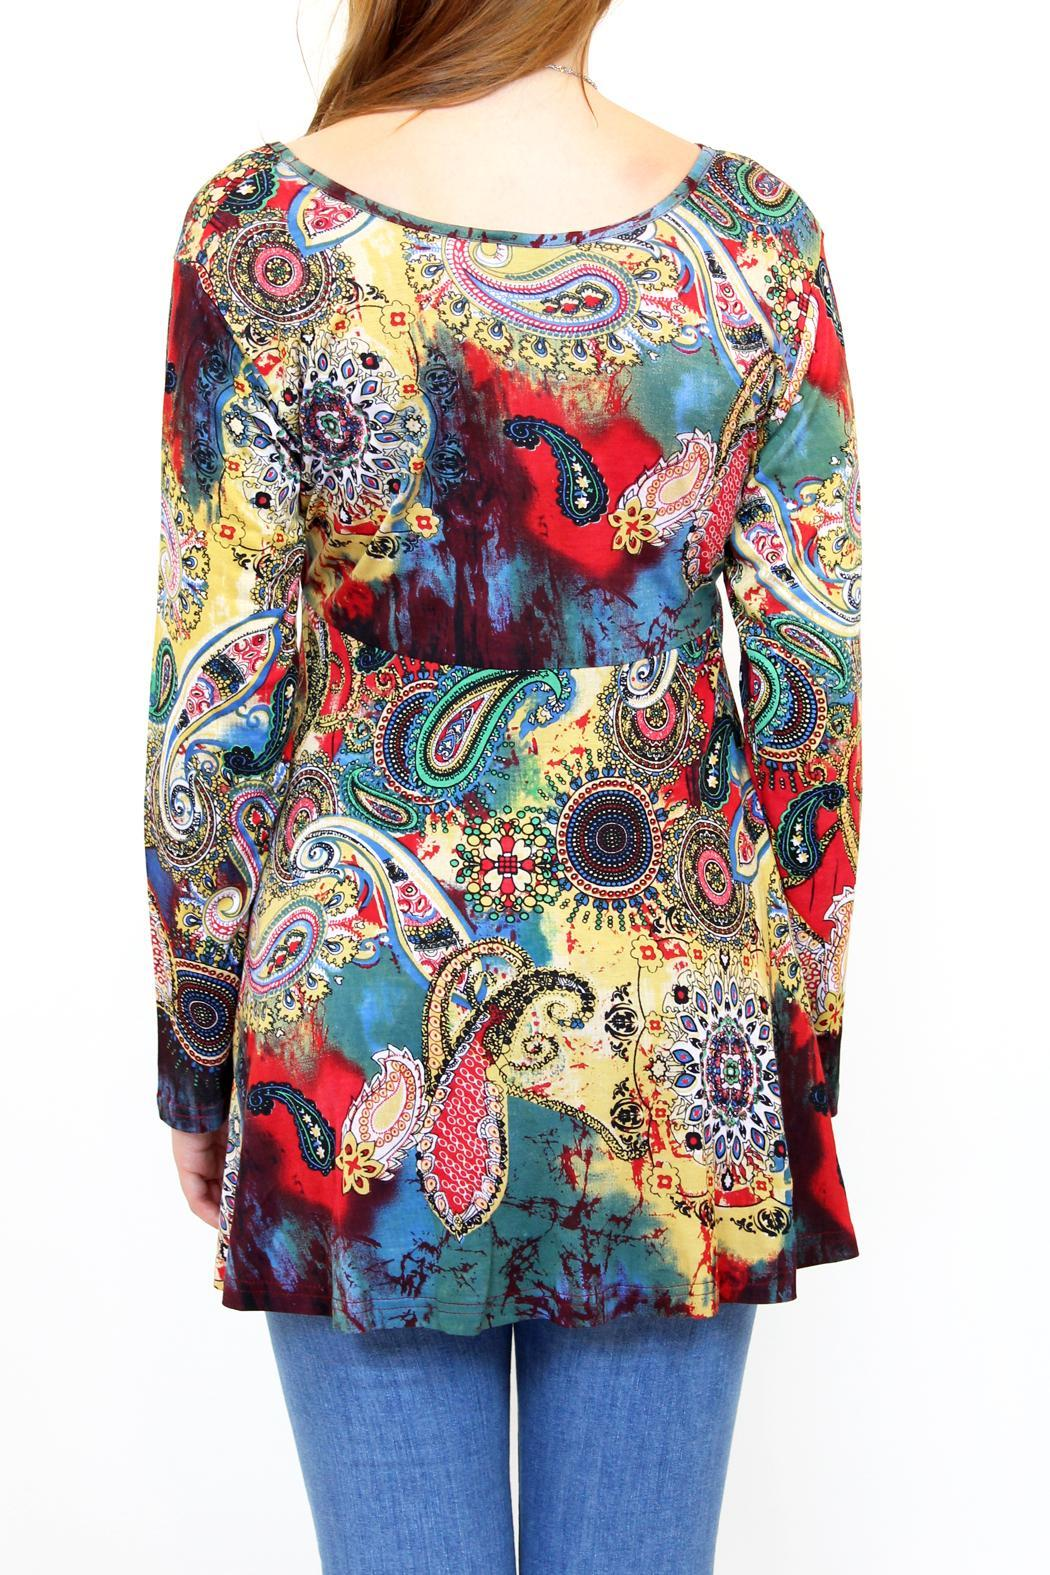 fashion_fuse watercolour paisley tunic multicolor 25ab7de8_l fashion fuse watercolour paisley tunic from vancouver by carte the fuse box paisley at nearapp.co